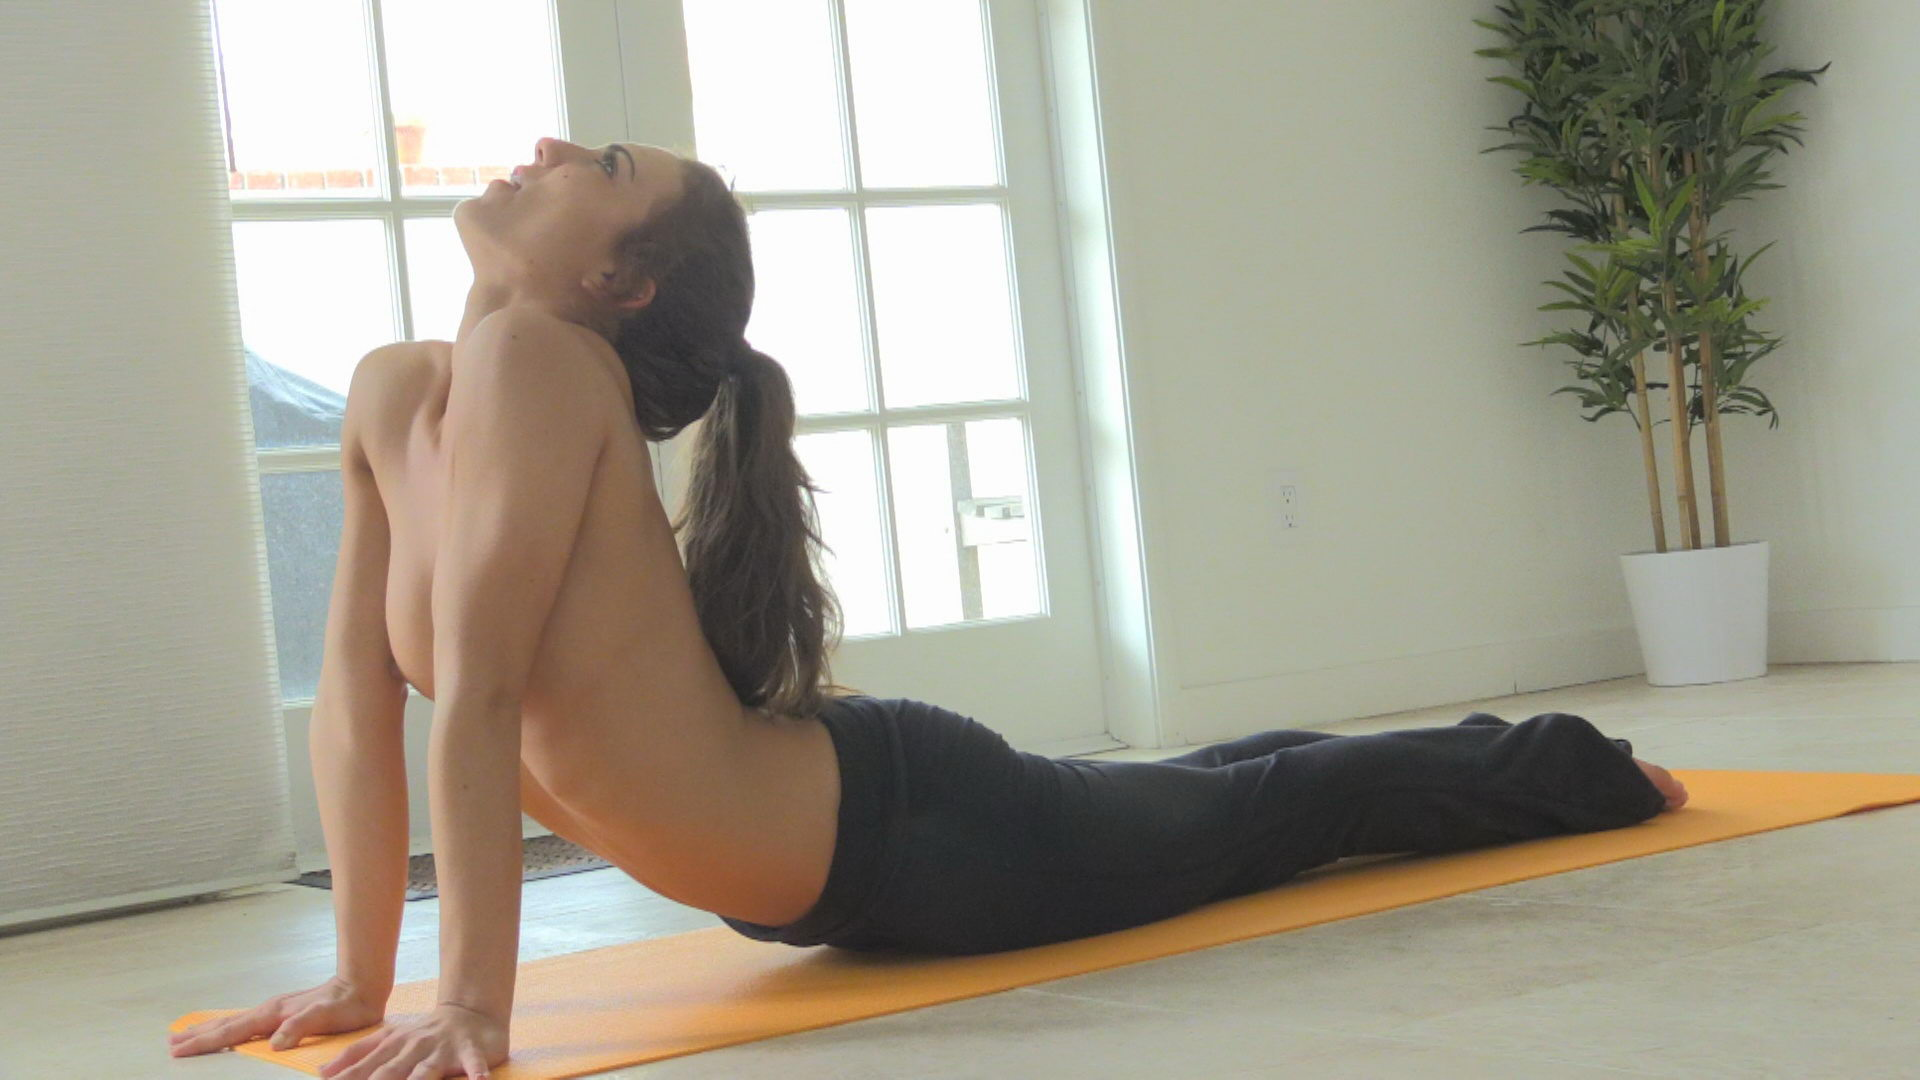 Yoga with Young Naked Girl